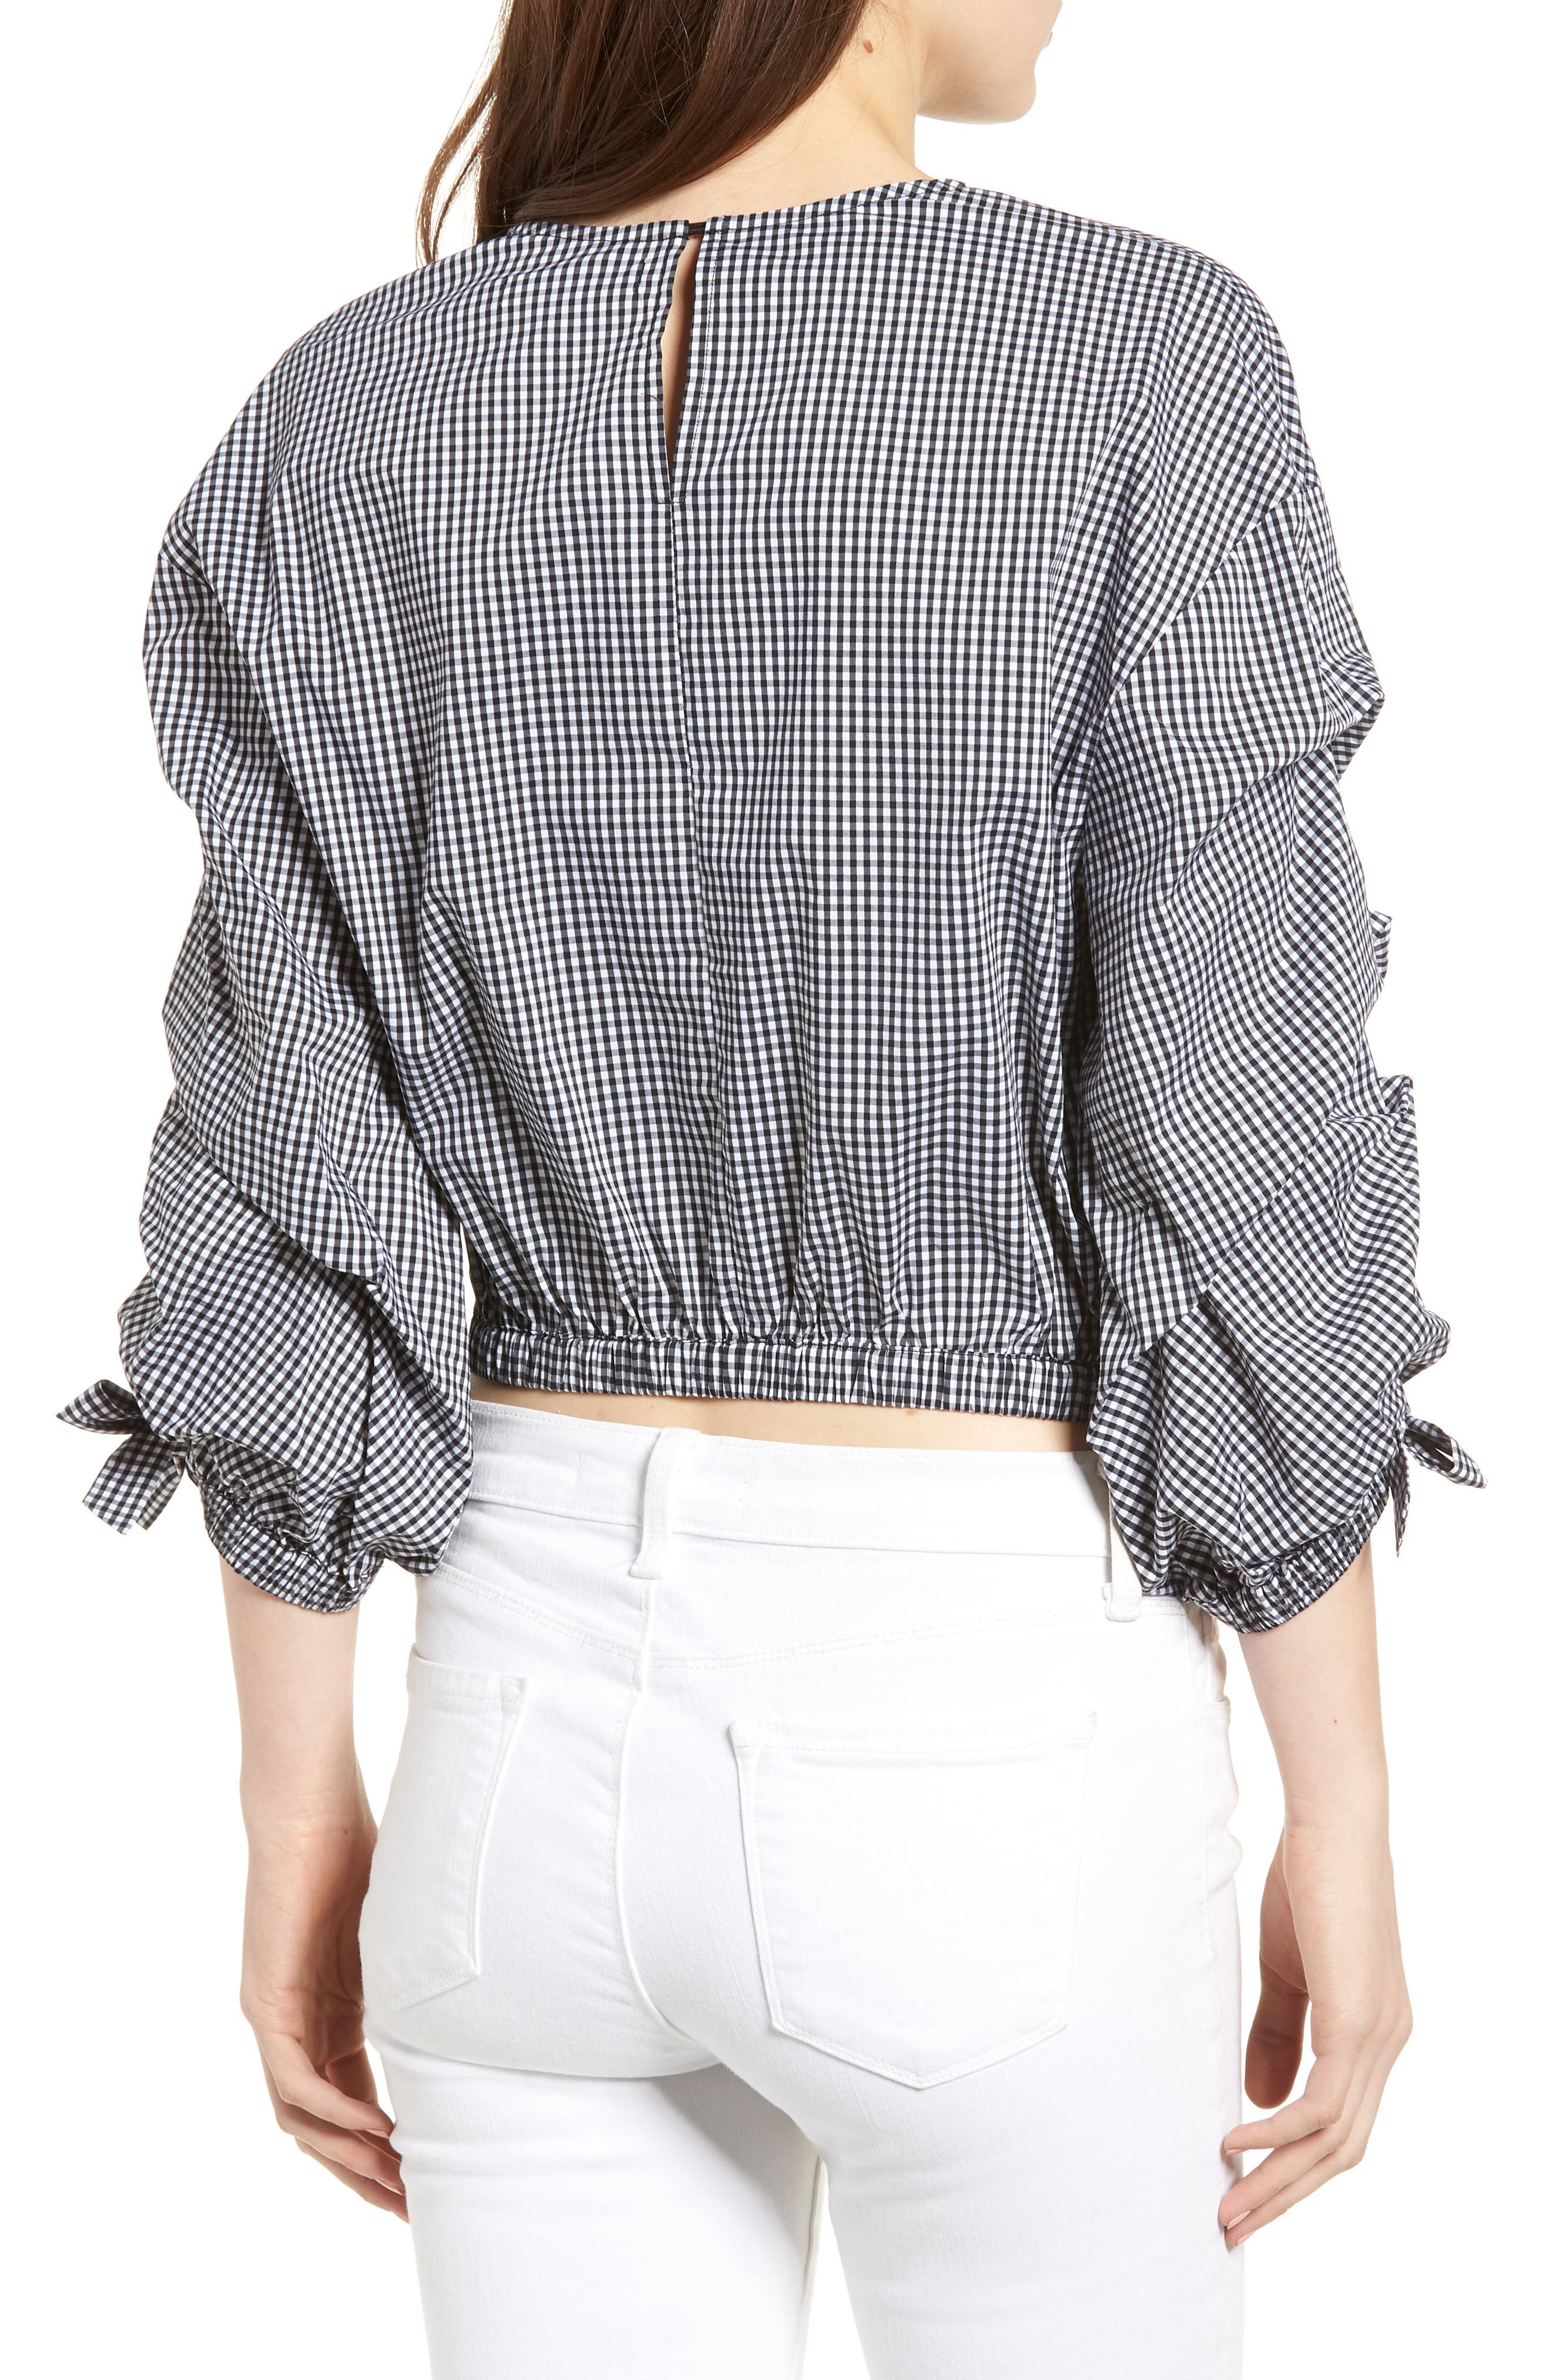 Bishop + Young Ruched Sleeve Blouse,                             Alternate thumbnail 2, color,                             Gingham